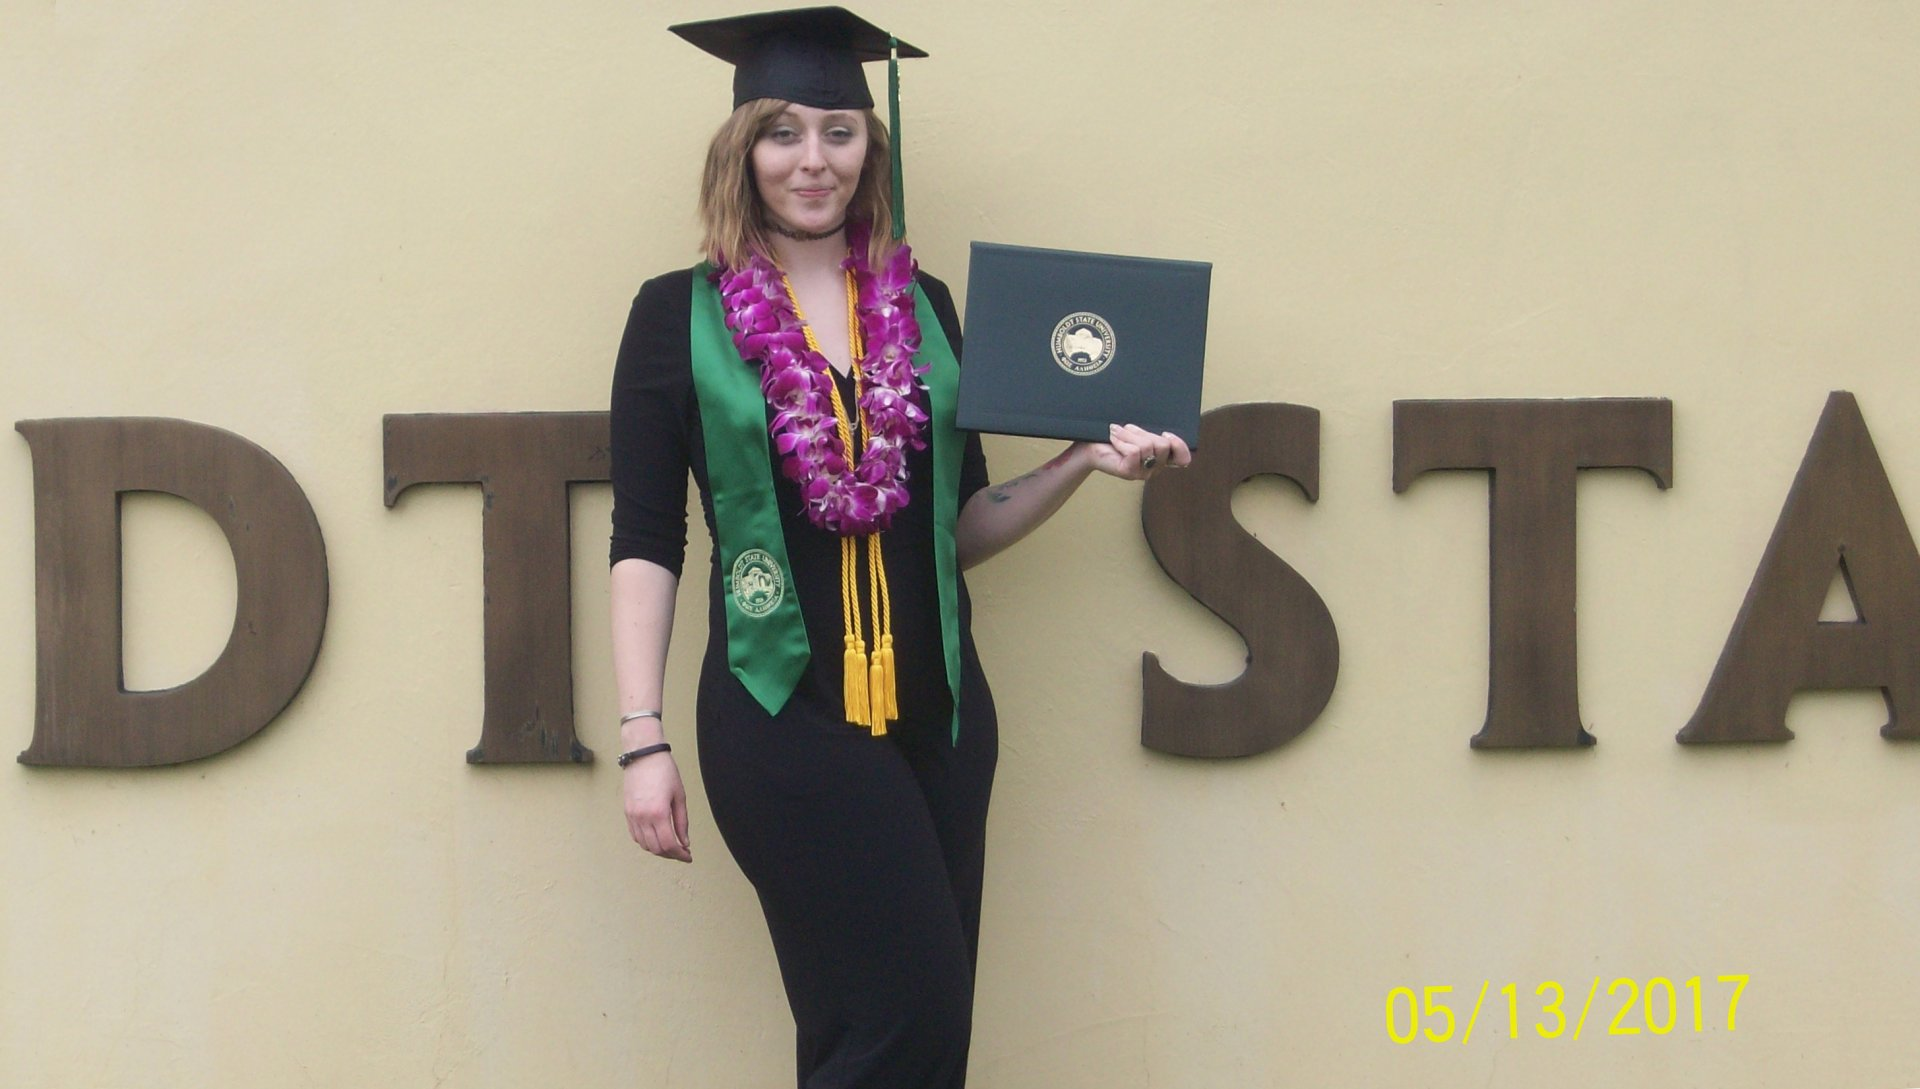 Erin Henry posing with her degree at Humboldt State University. Photo submitted by Tom Henry, father of Erin.